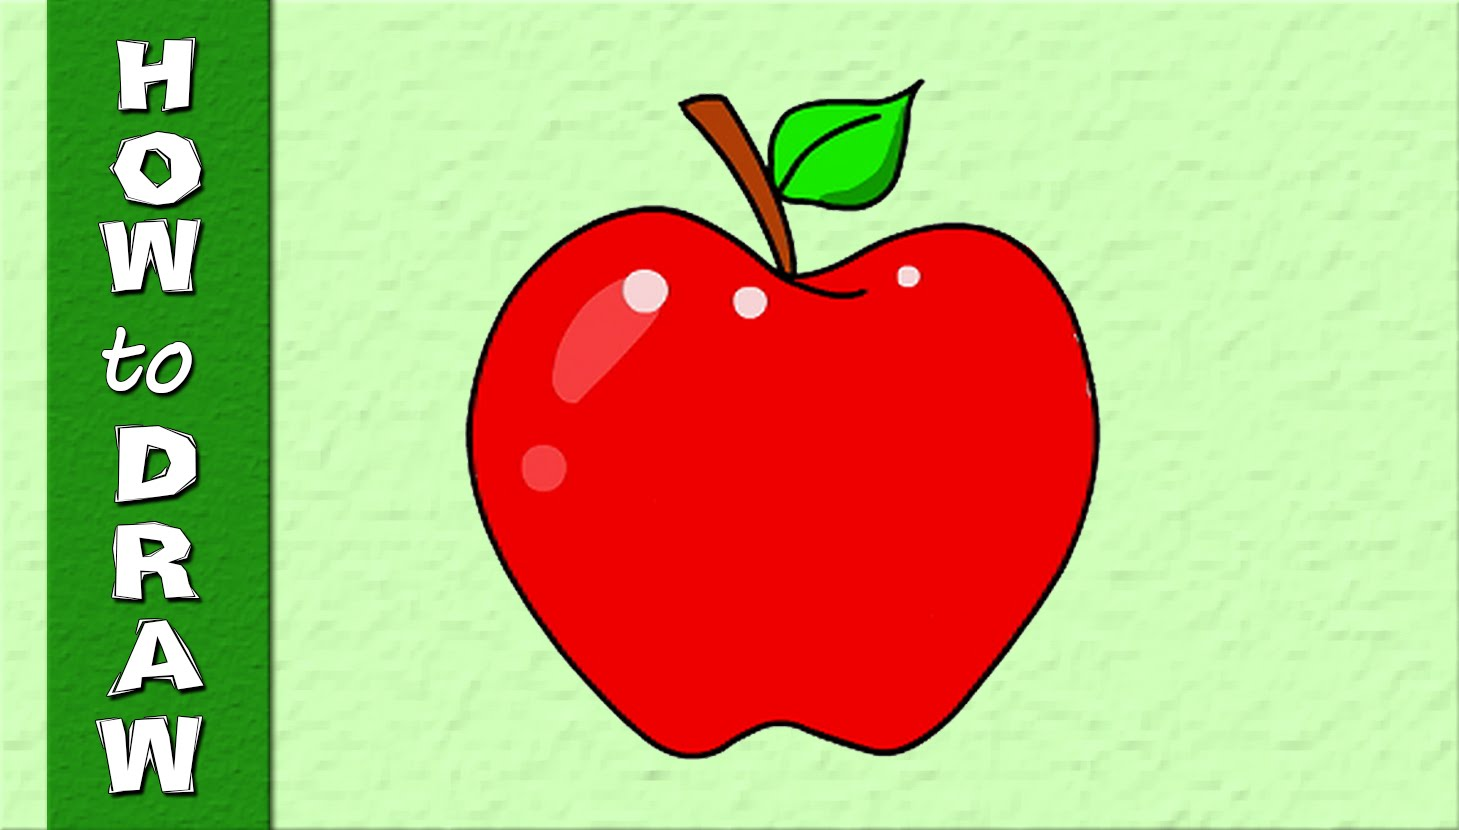 Apple Drawing For Kids at GetDrawings.com | Free for personal use ...